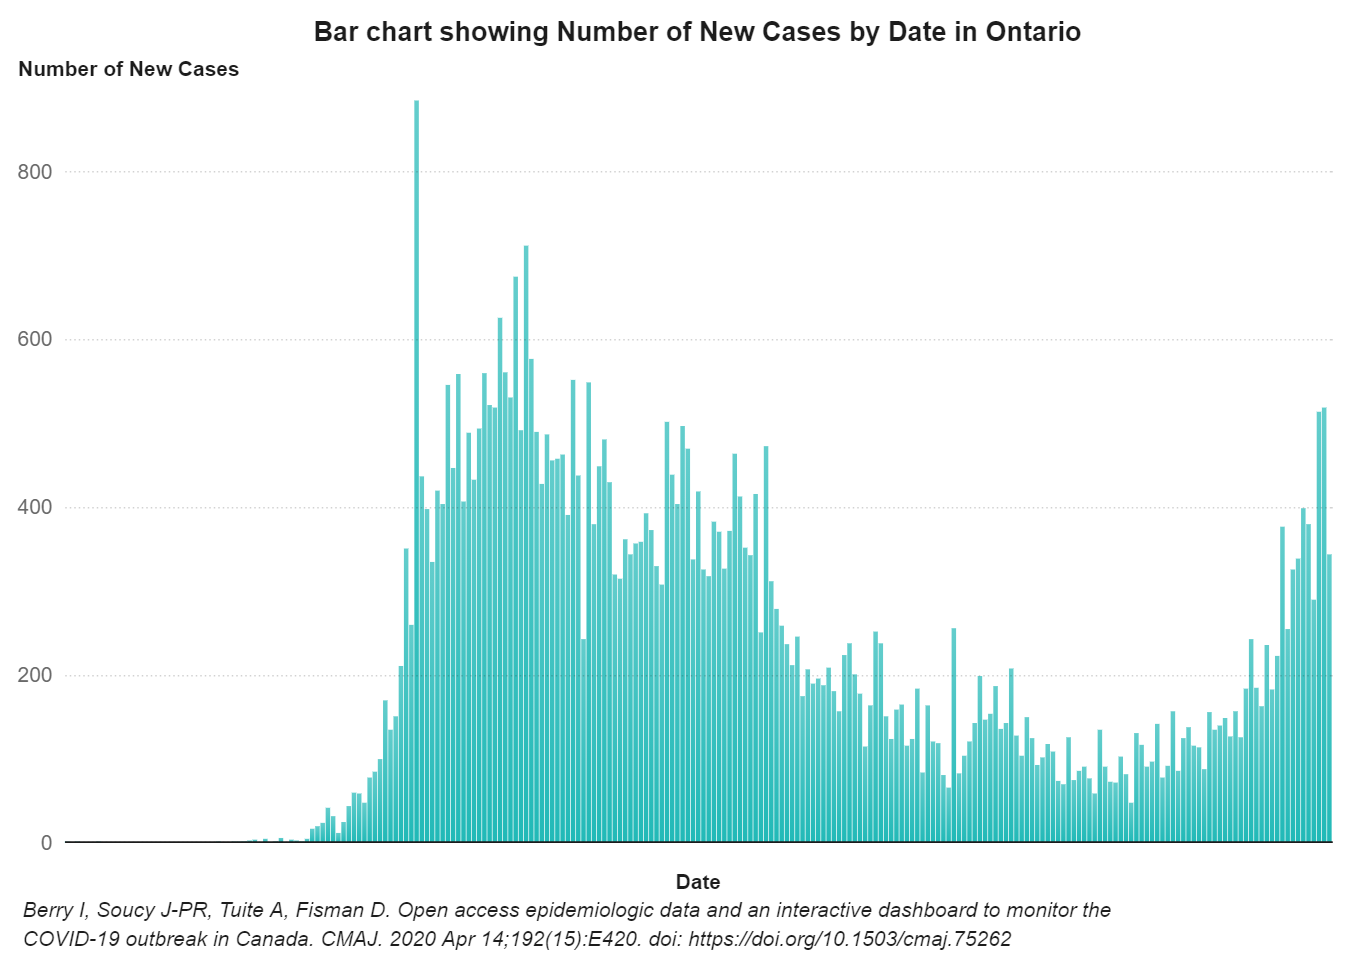 A bar graph with vertical bars depicting the number of new COVID-19 cases in Ontario.